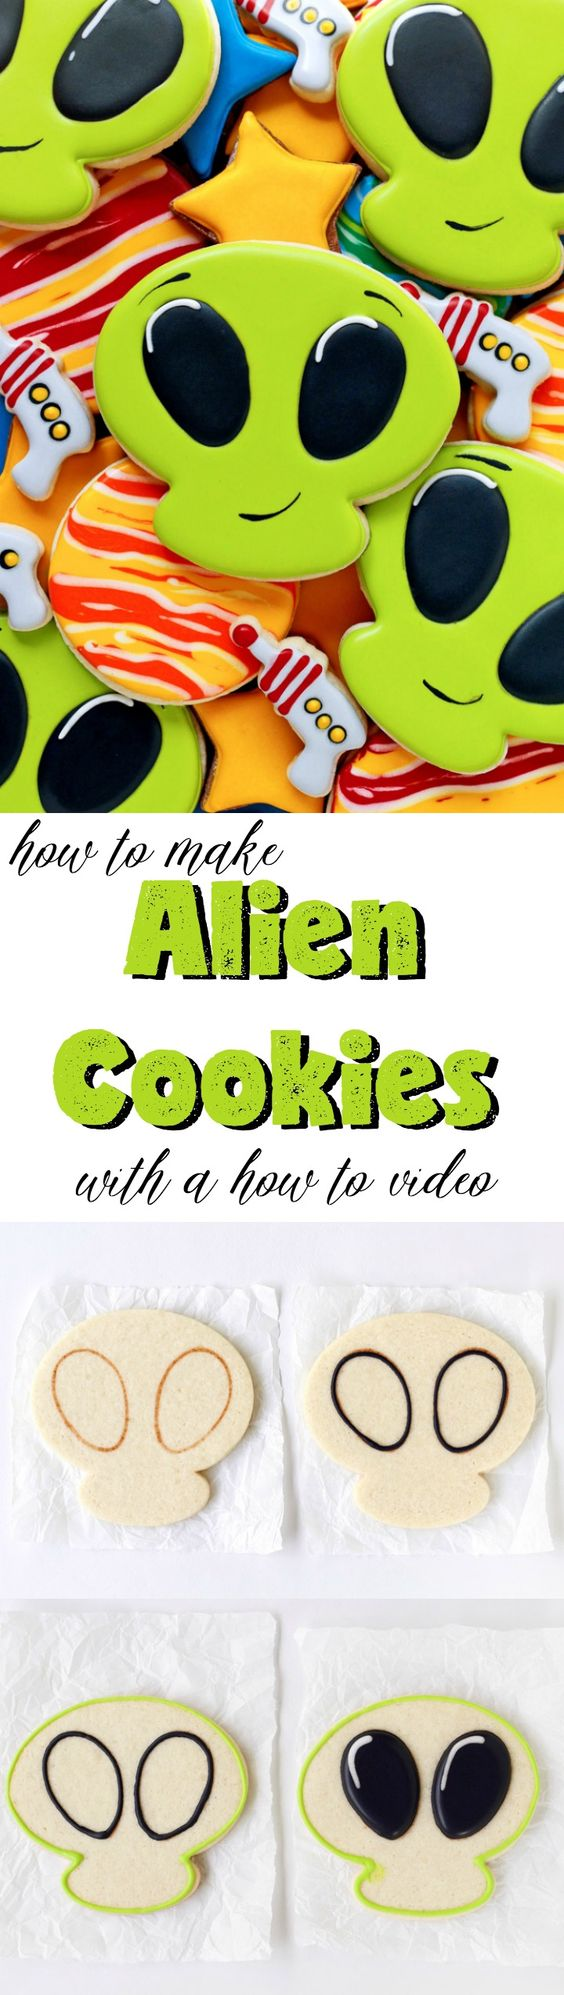 How to Make Alien Cookies with a How to Video | The Bearfoot Baker